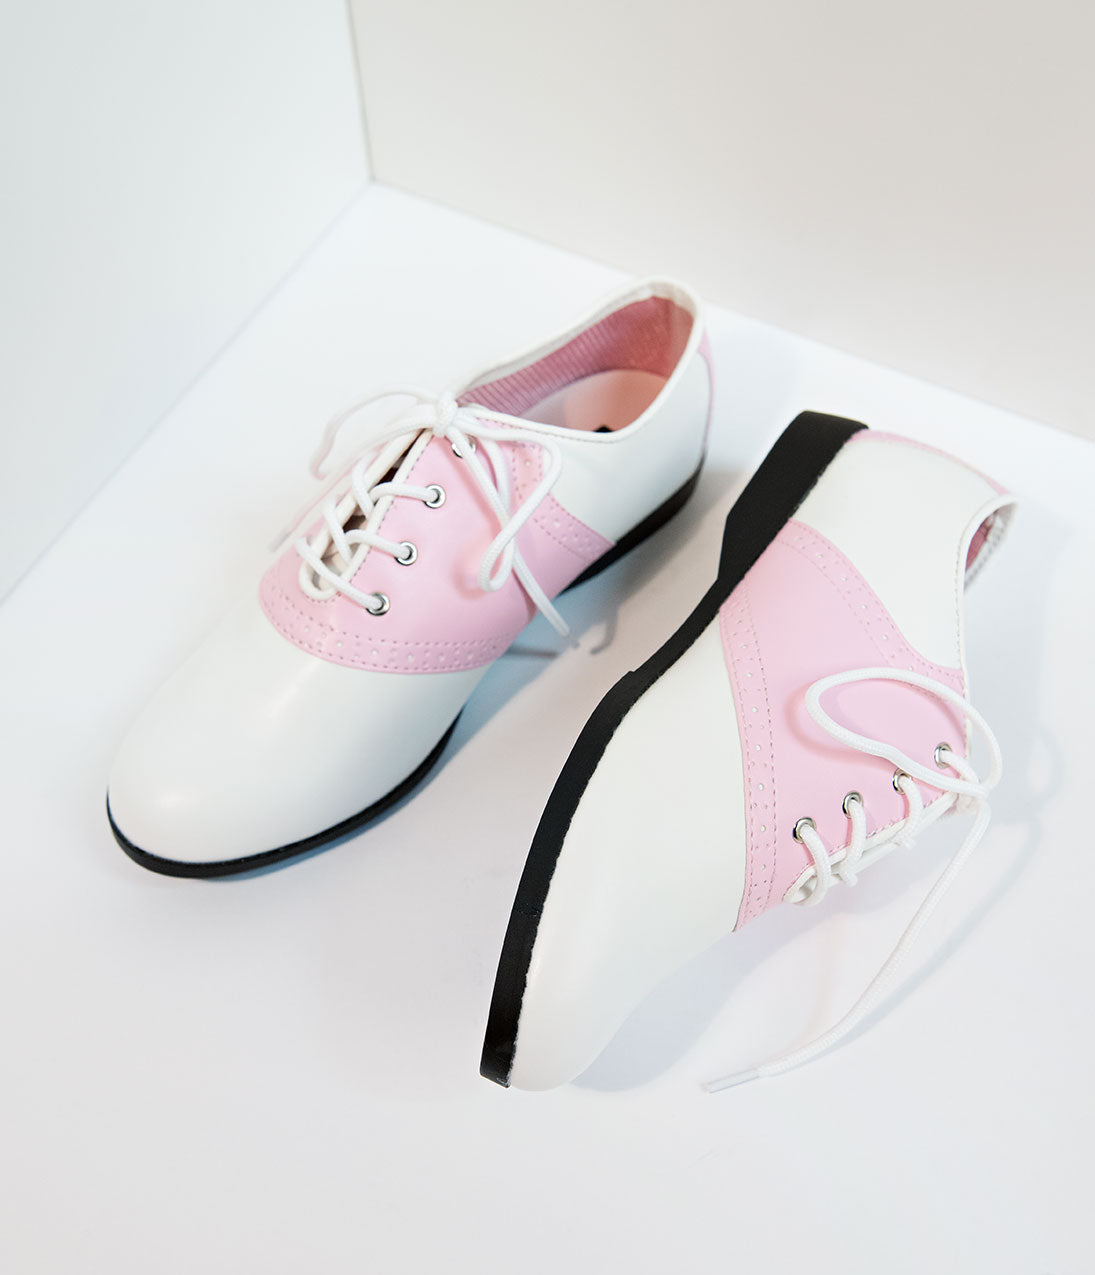 1950s Style Shoes | Heels, Flats, Boots Pink  White Classic Lace Up Saddle Shoes $52.00 AT vintagedancer.com